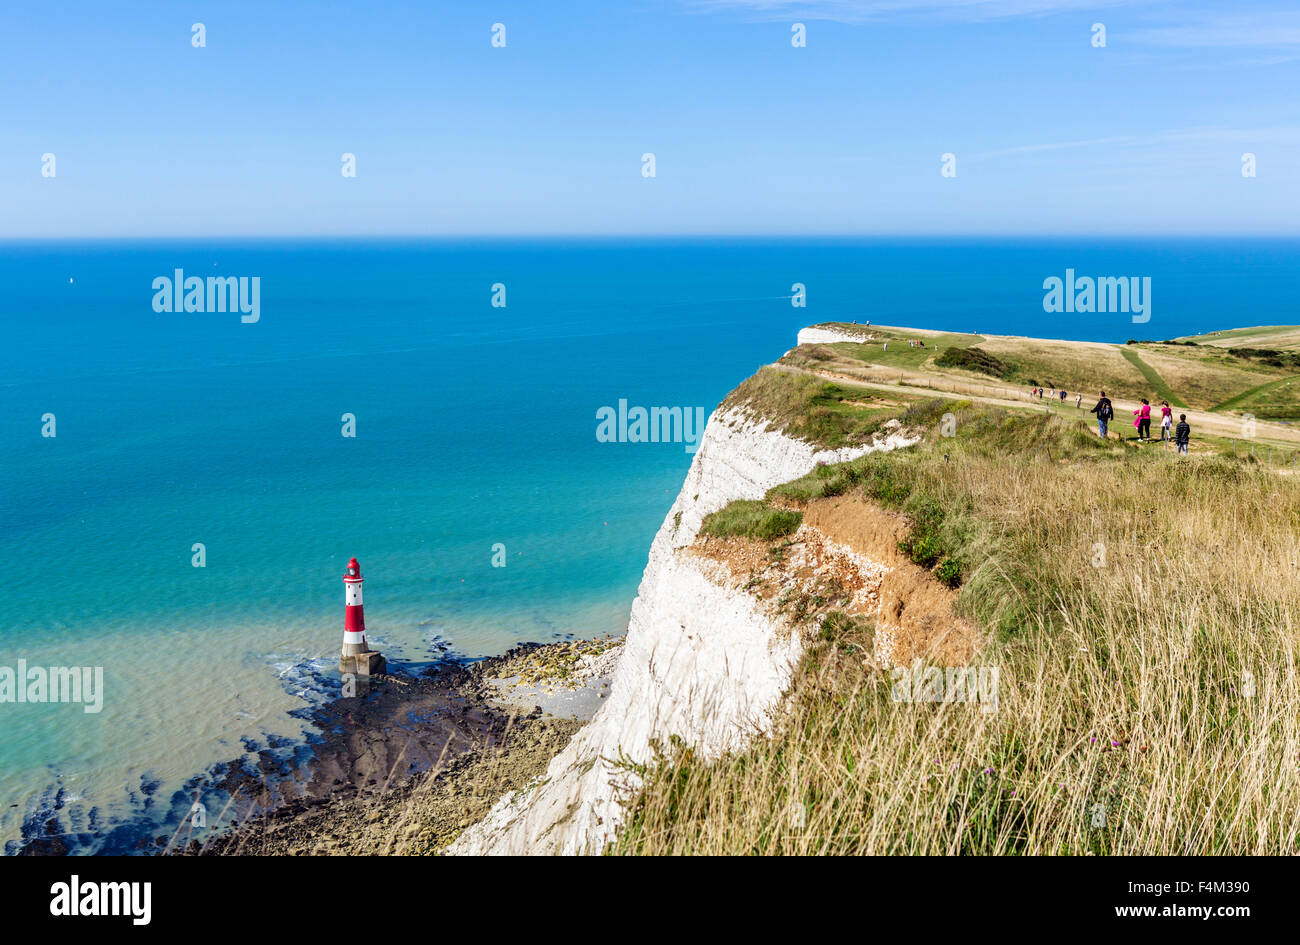 Walkers on the clifftop path overlooking the lighthouse at Beachy Head, near Eastbourne, East Sussex, England, UK - Stock Image